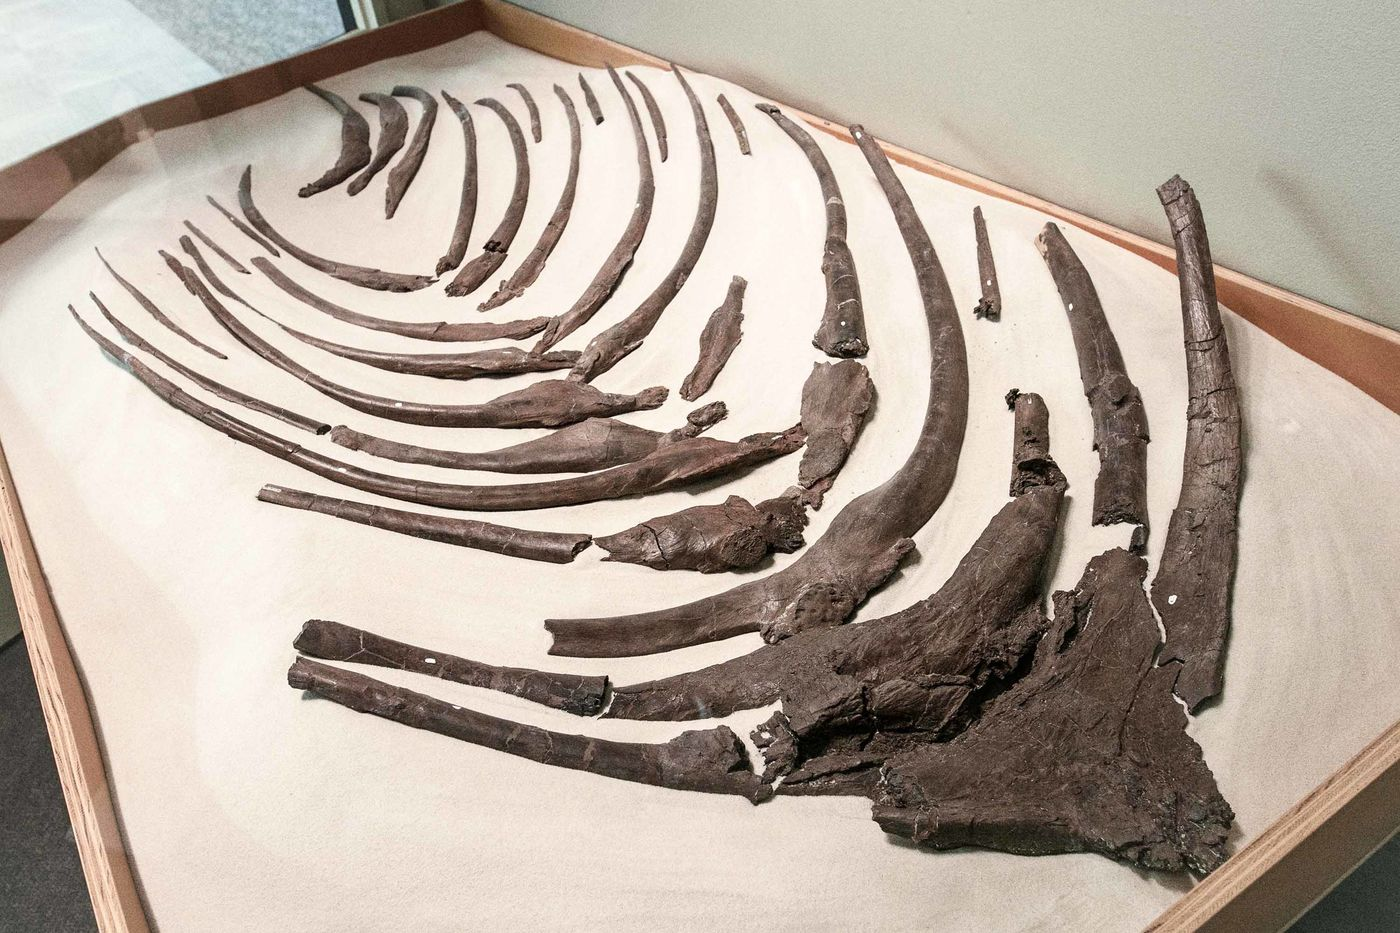 Rows of brown, curved bones that sort of look like ribs on display in a box of sand enclosed in a glass display case.